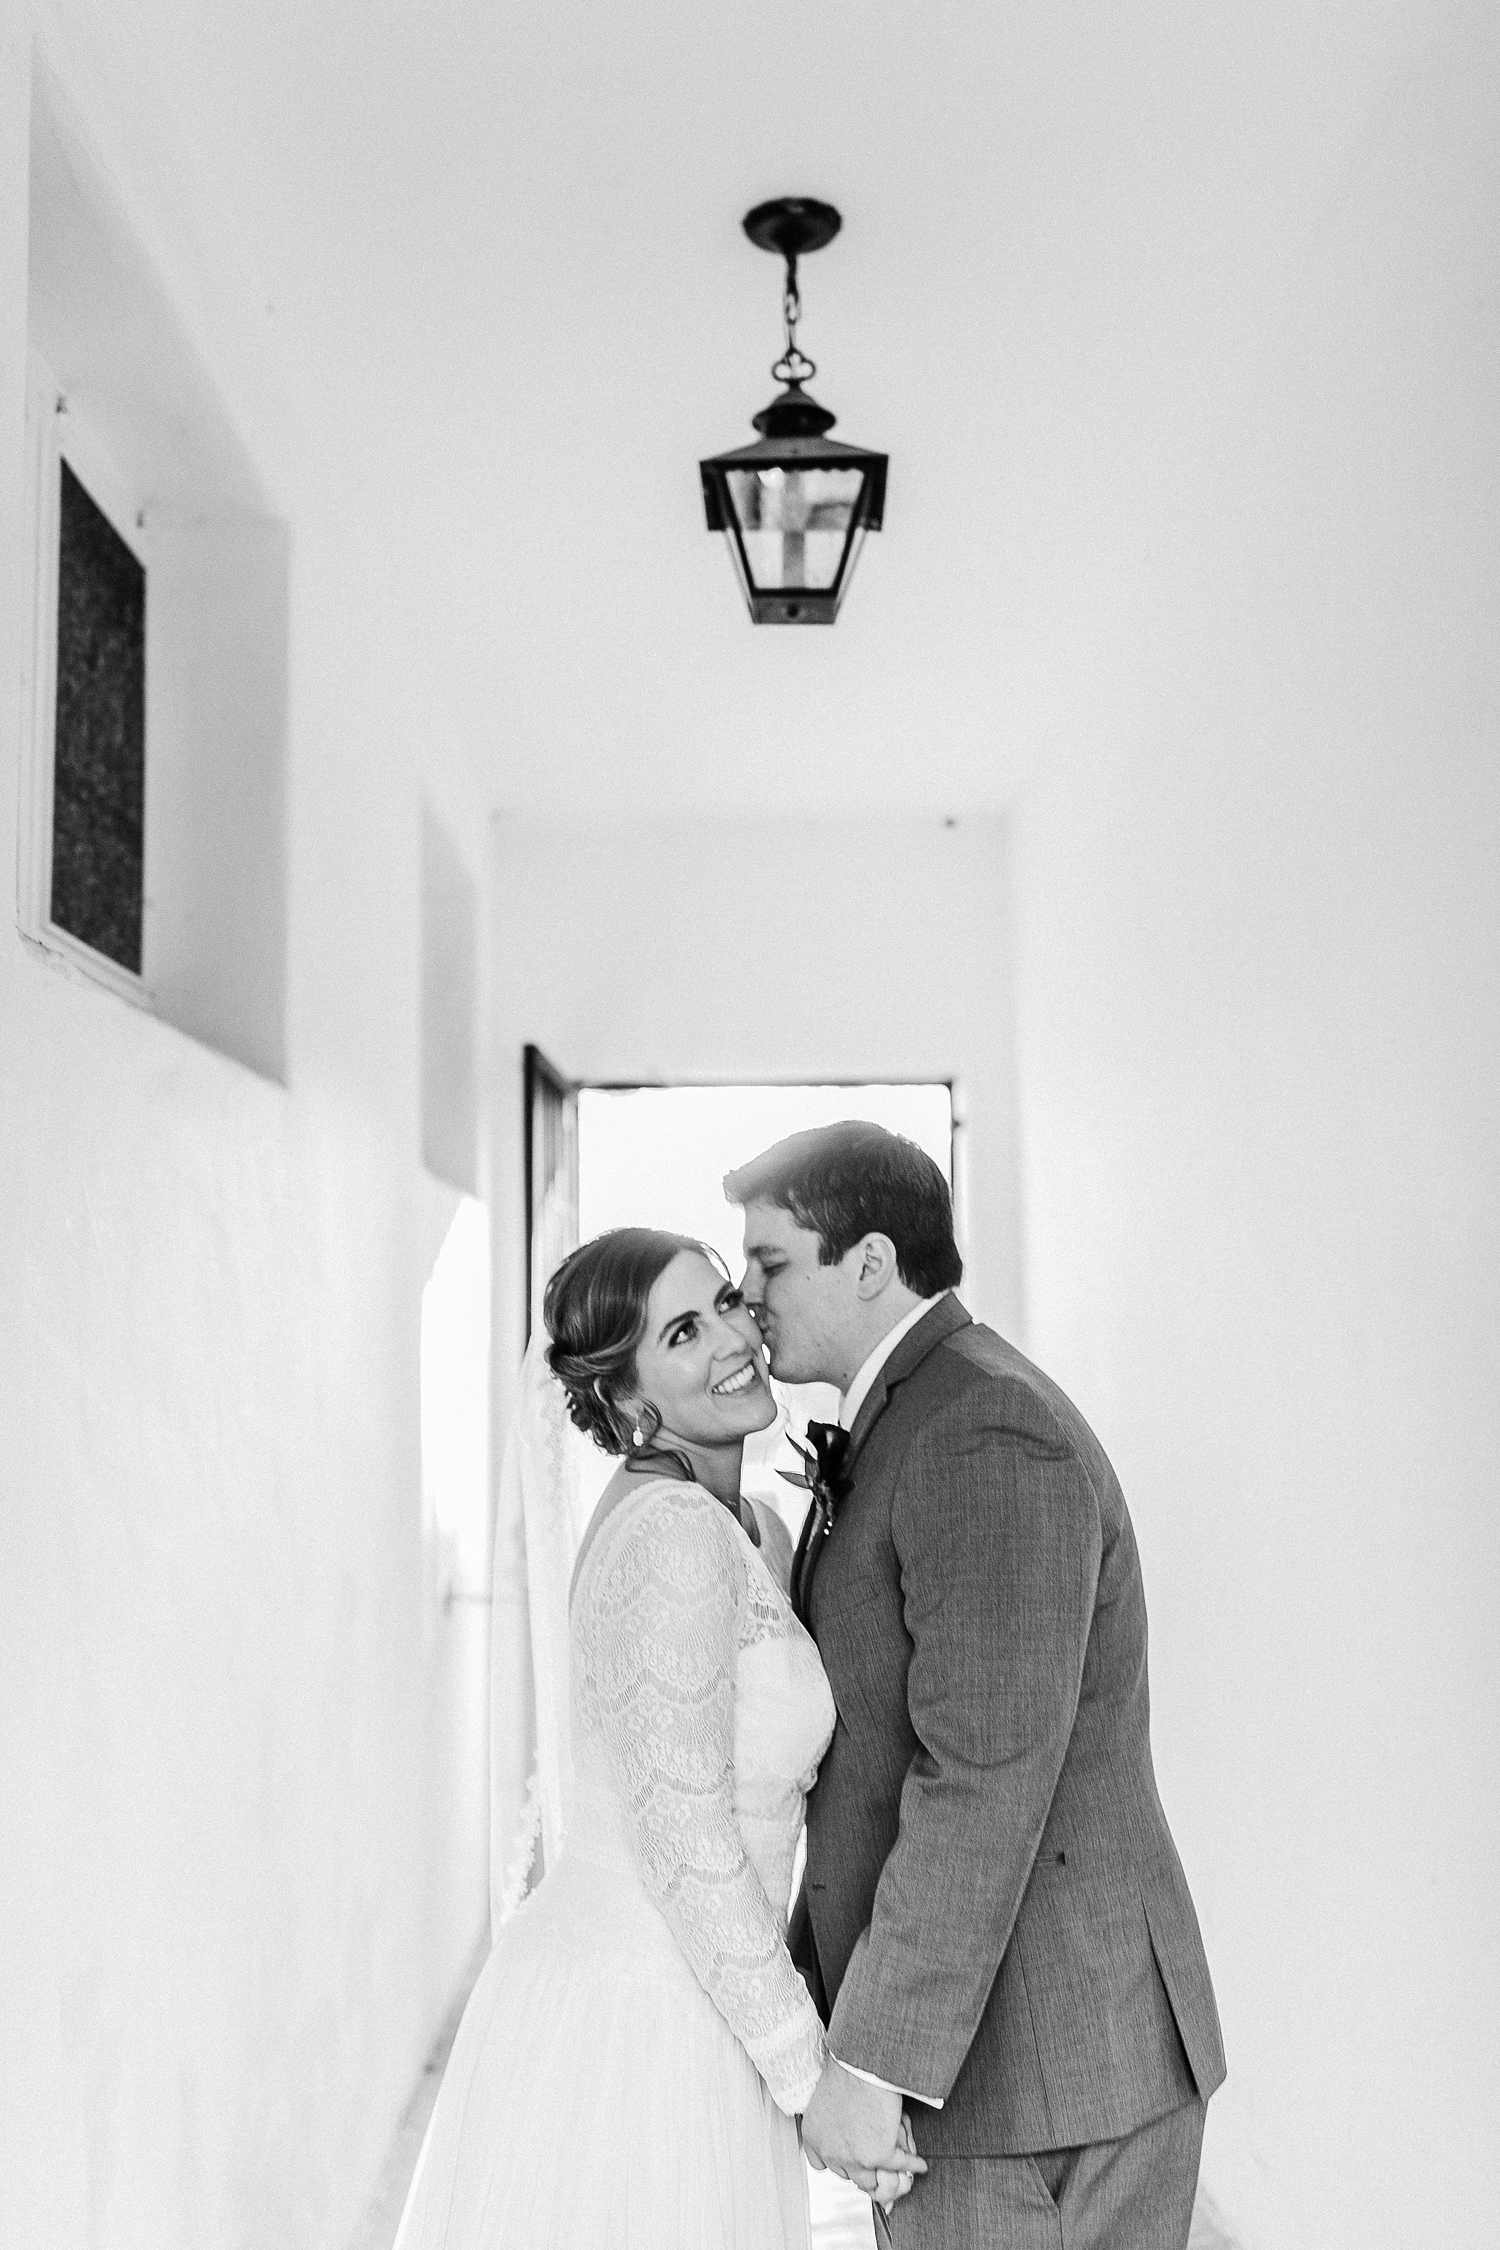 Alicia+lucia+photography+-+albuquerque+wedding+photographer+-+santa+fe+wedding+photography+-+new+mexico+wedding+photographer+-+albuquerque+fall+wedding+-+los+poblanos+albuquerque+-+los+poblanos+wedding+-+los+poblanos+fall+wedding_0052.jpg